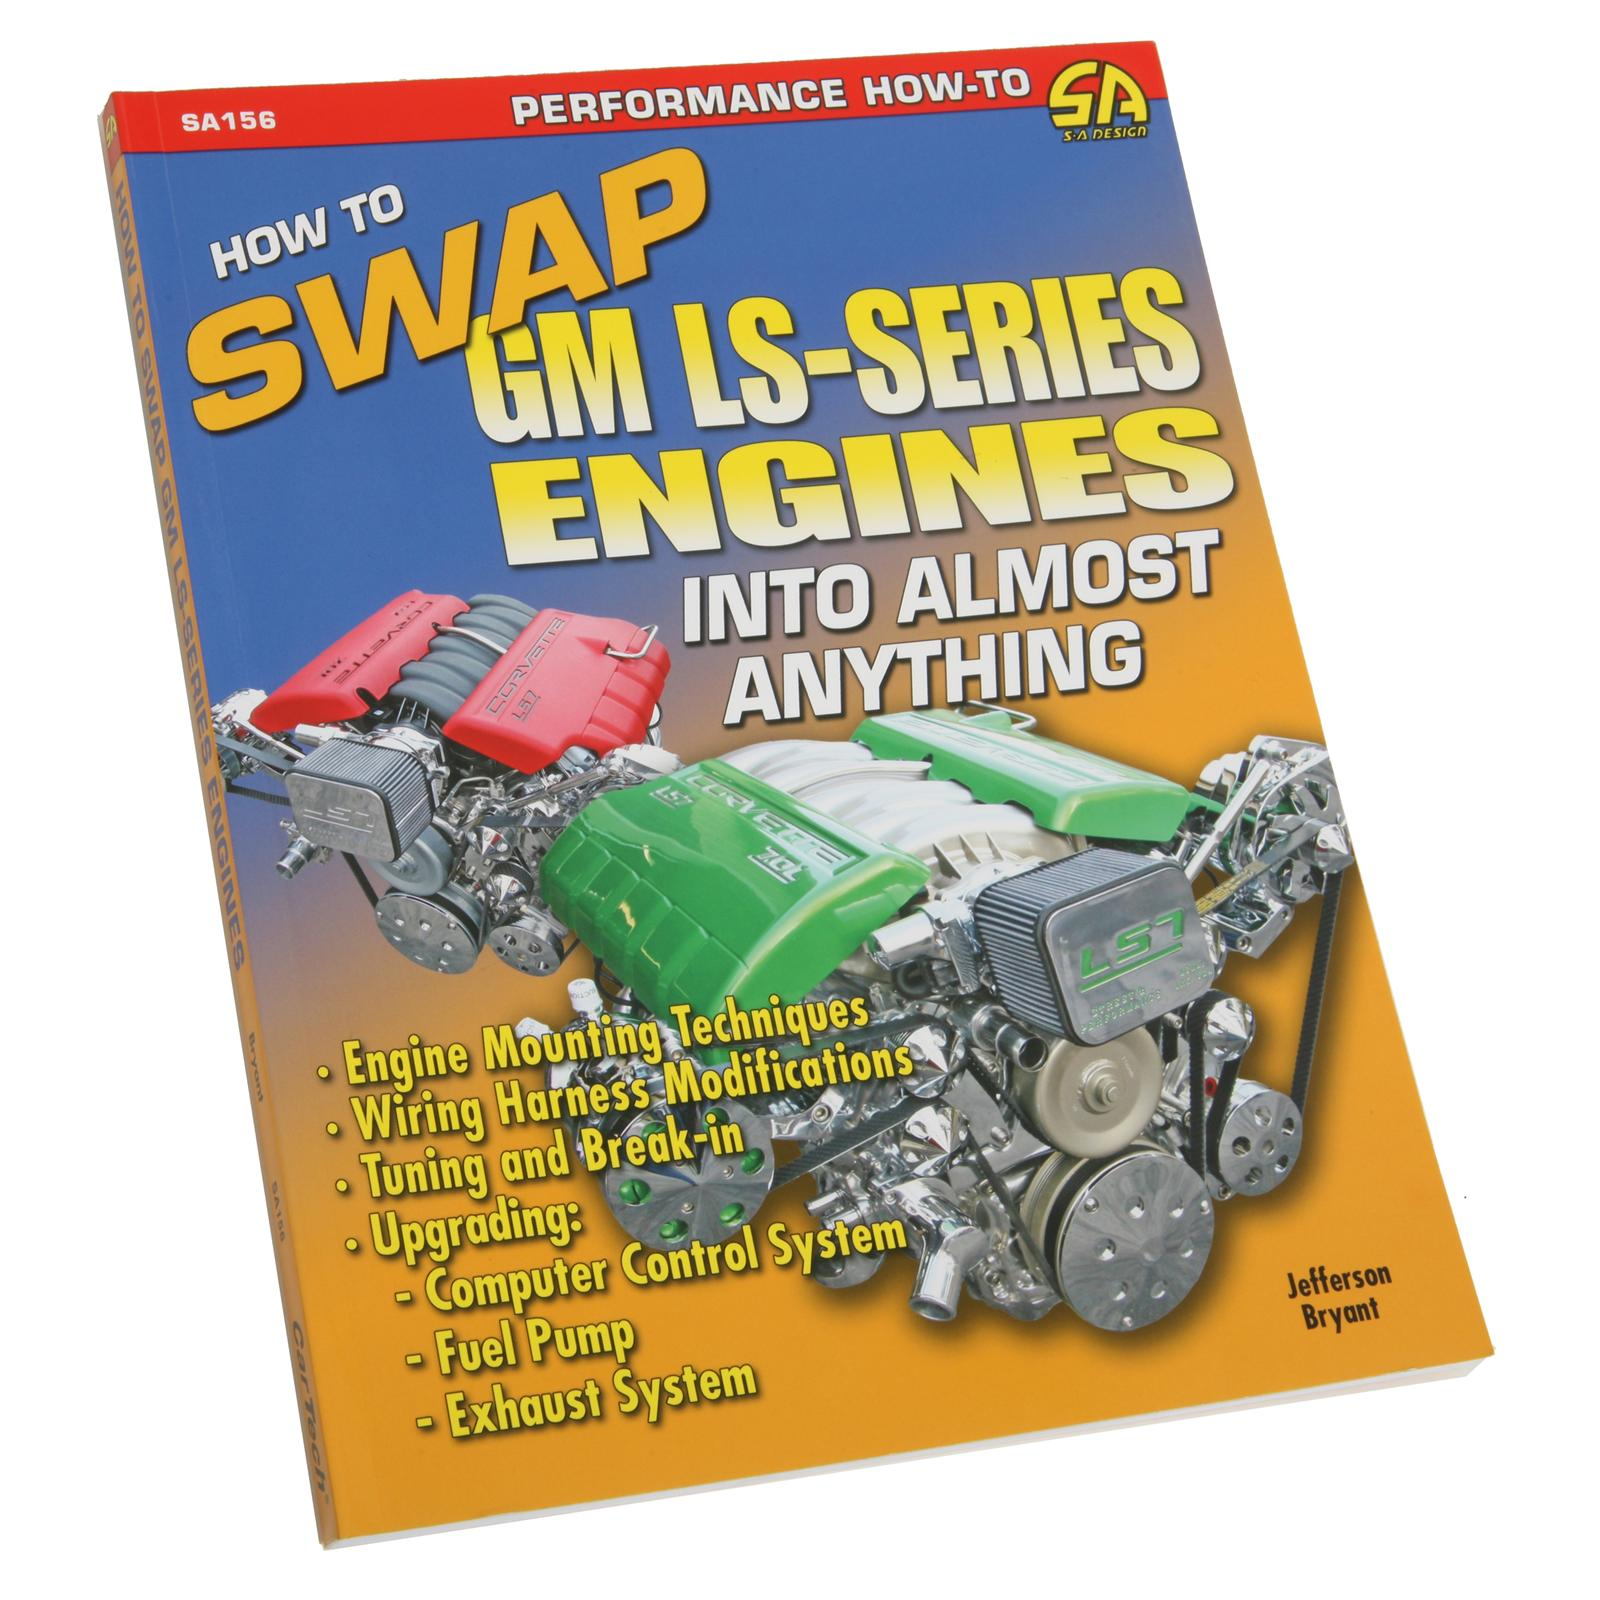 Sa Design How To Swap Gm Ls Series Engines Into Almost Anything Wiring Sa156 Free Shipping On Orders Over 99 At Summit Racing